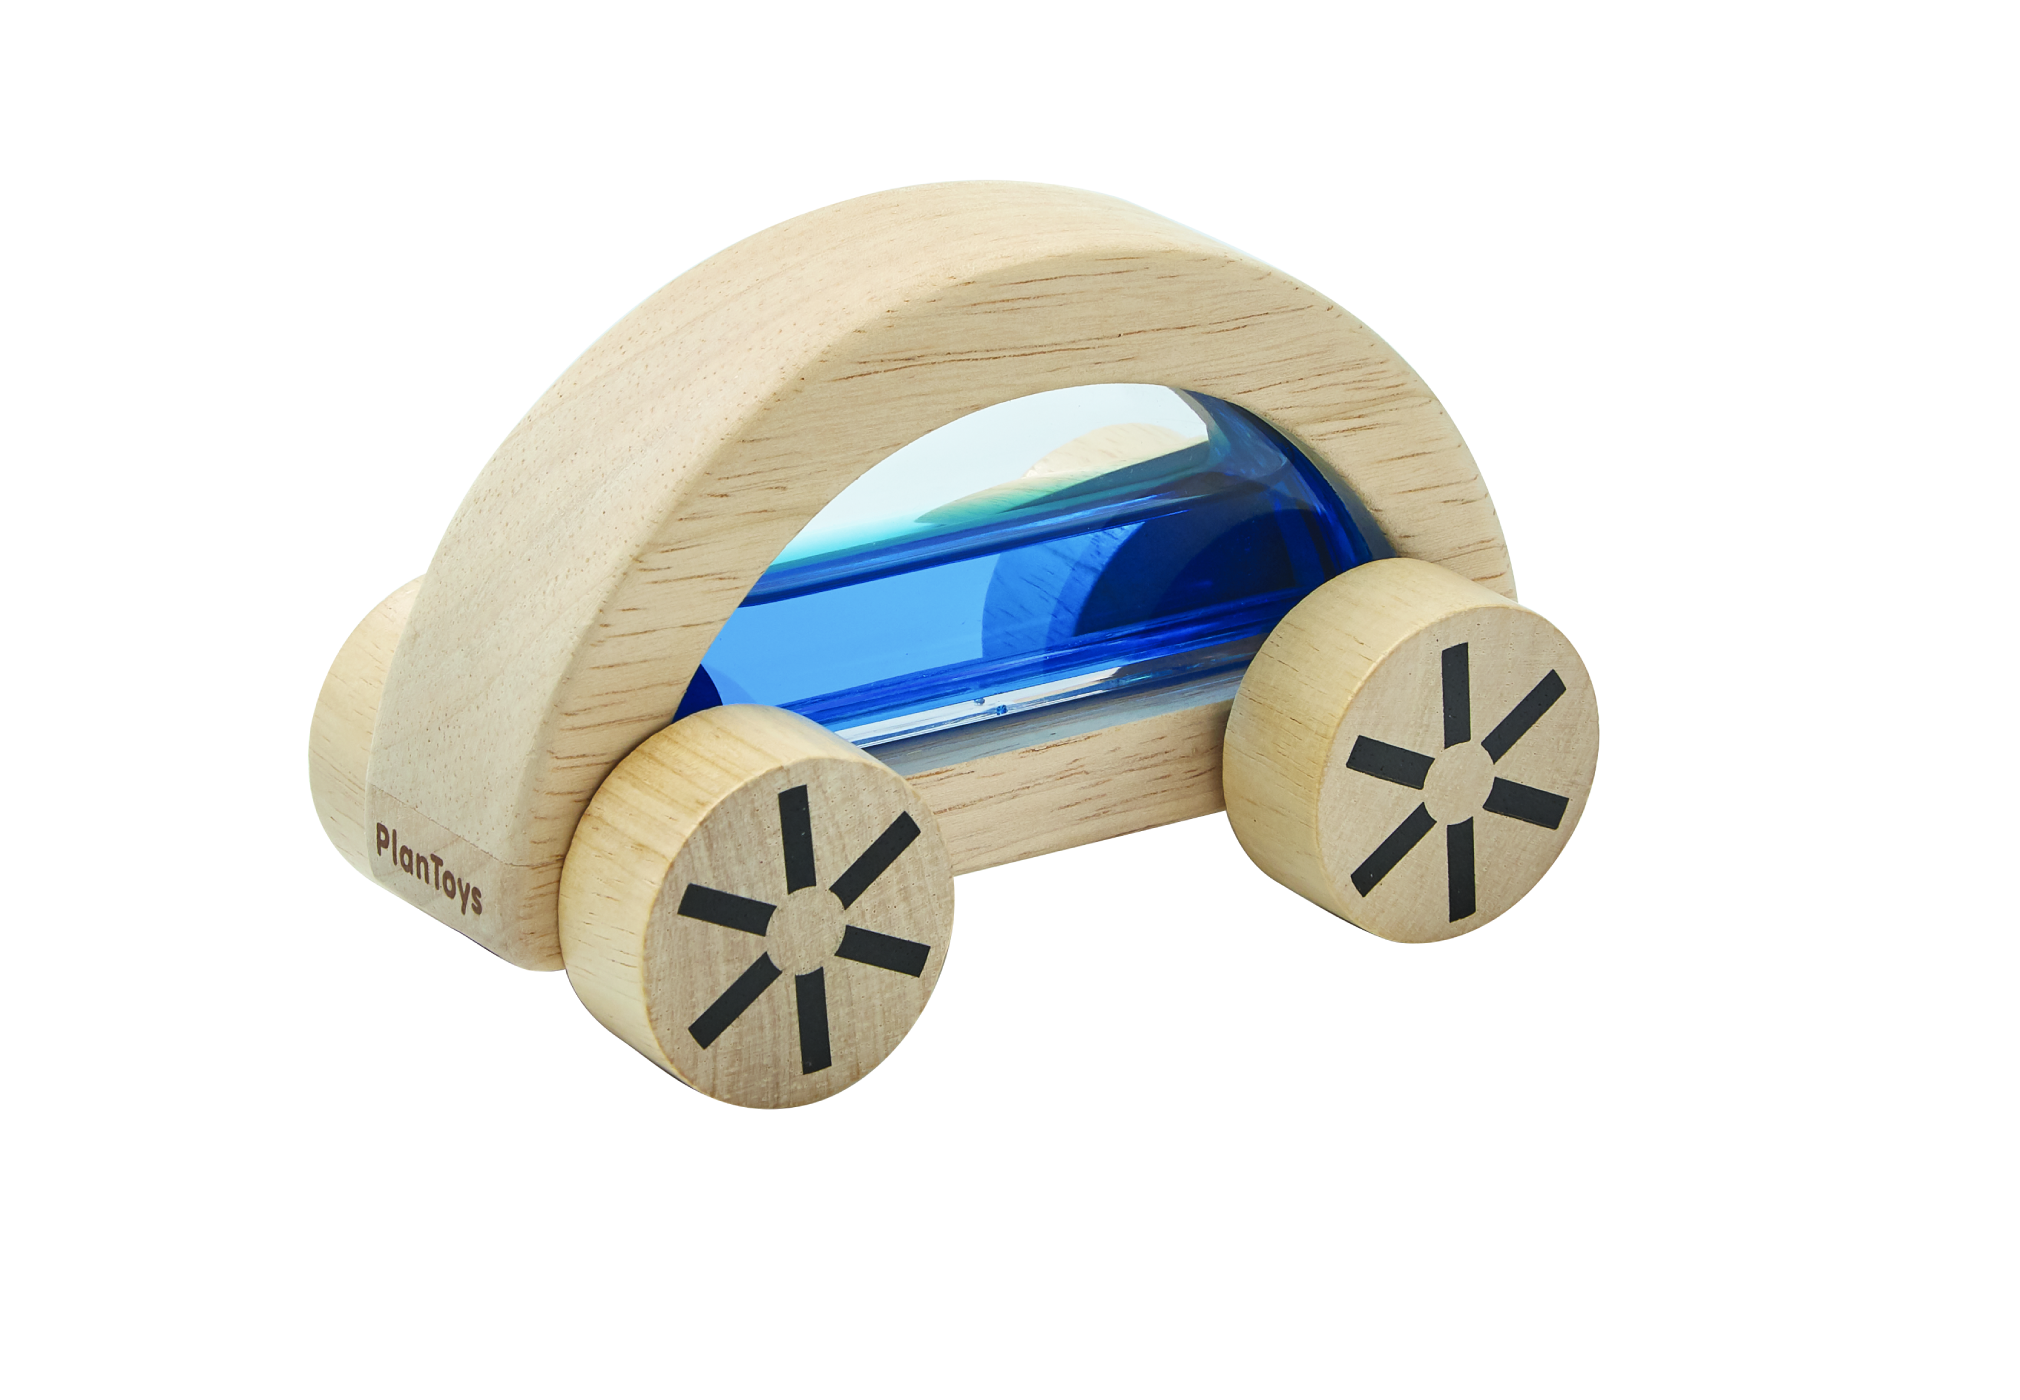 5449_PlanToys_WAUTOMOBILE_(Blue)_Active_Play_Fine_Motor_Imagination_Language_and_Communications_Coordination_Visual_18m_Wooden_toys_Education_toys_Safety_Toys_Non-toxic_2.png